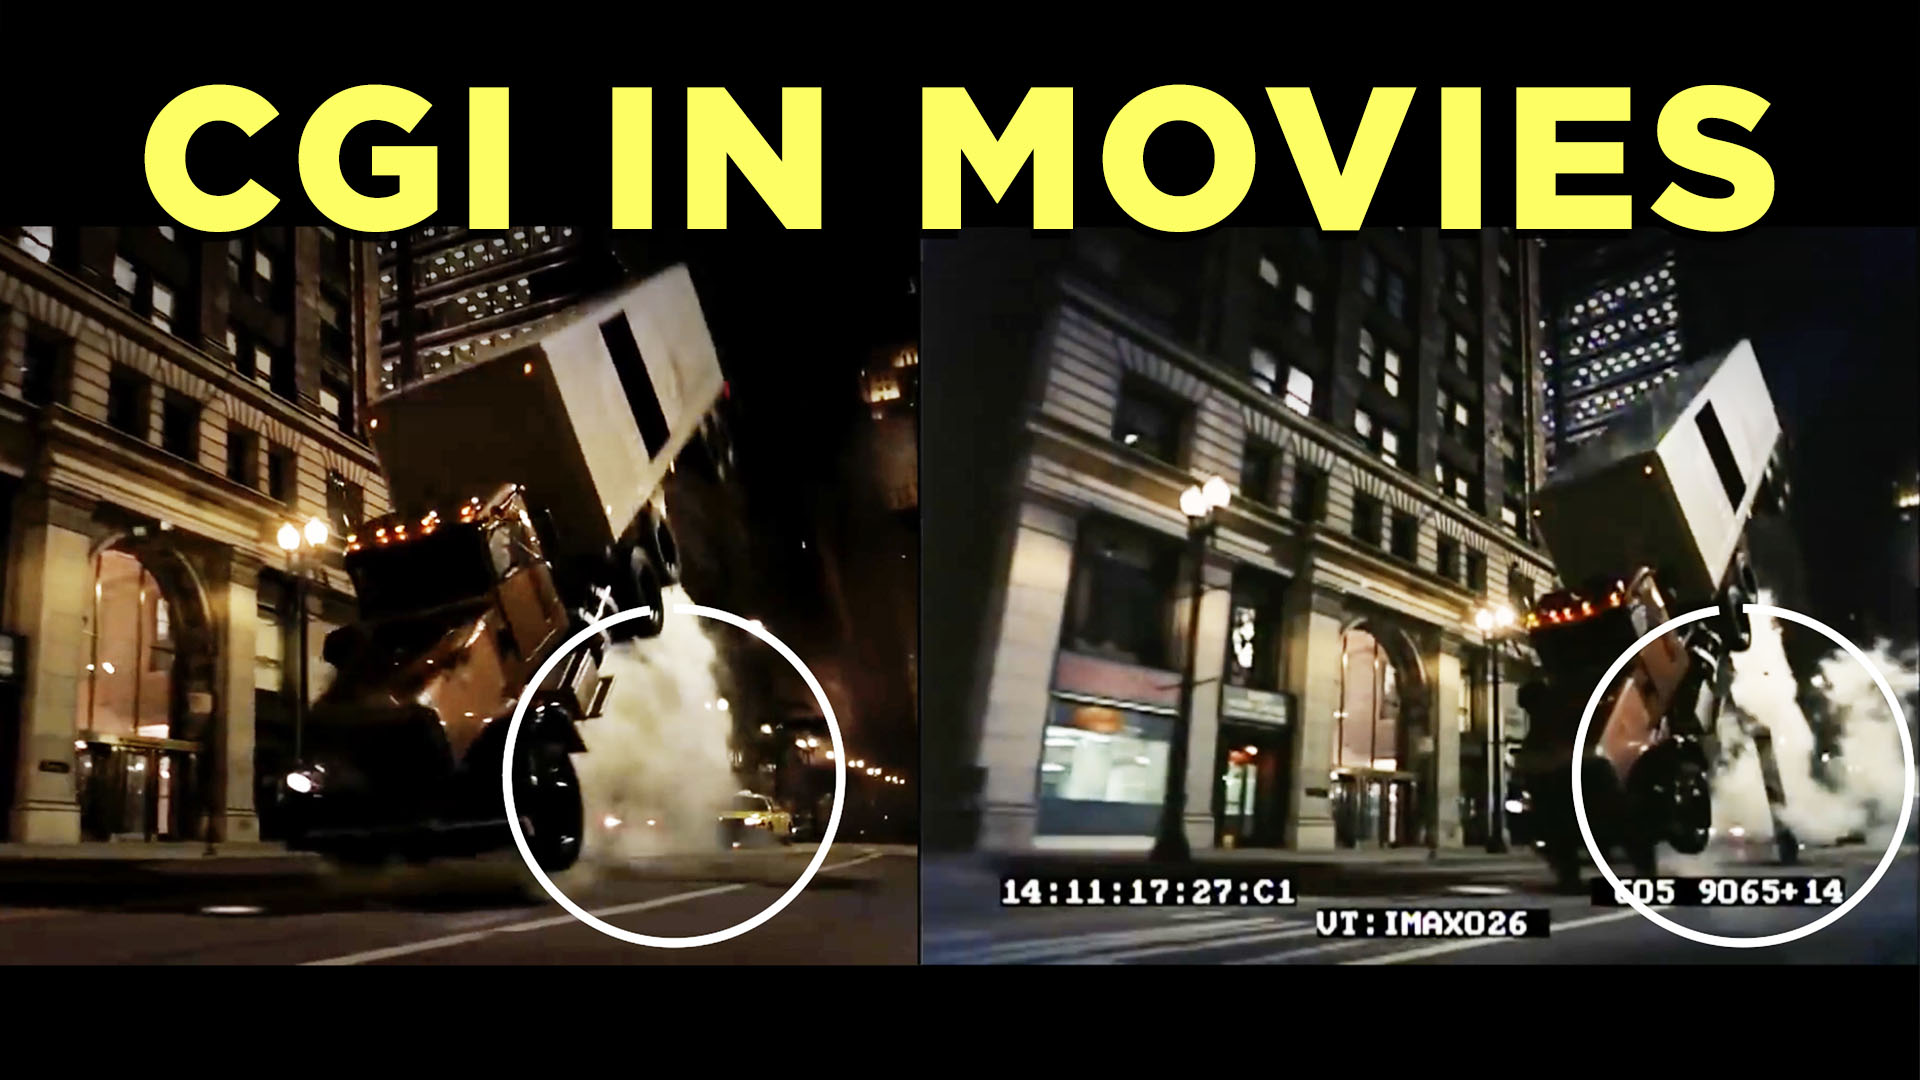 CGI in movies: Not just for superheroes